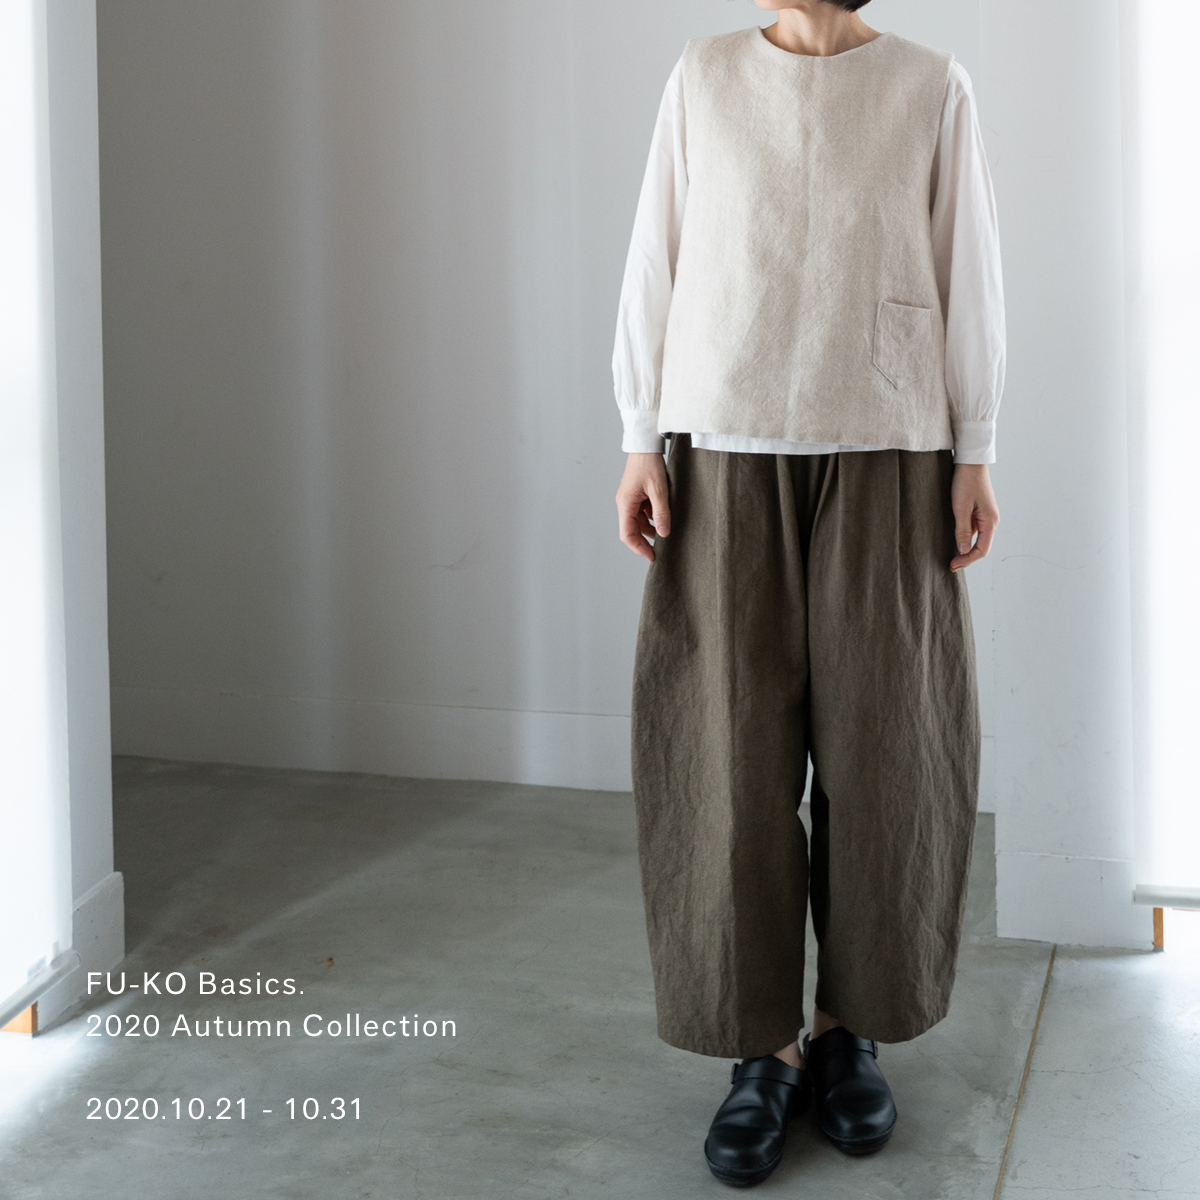 FU-KO Basics.2020 Autumn Collection 開催のお知らせ